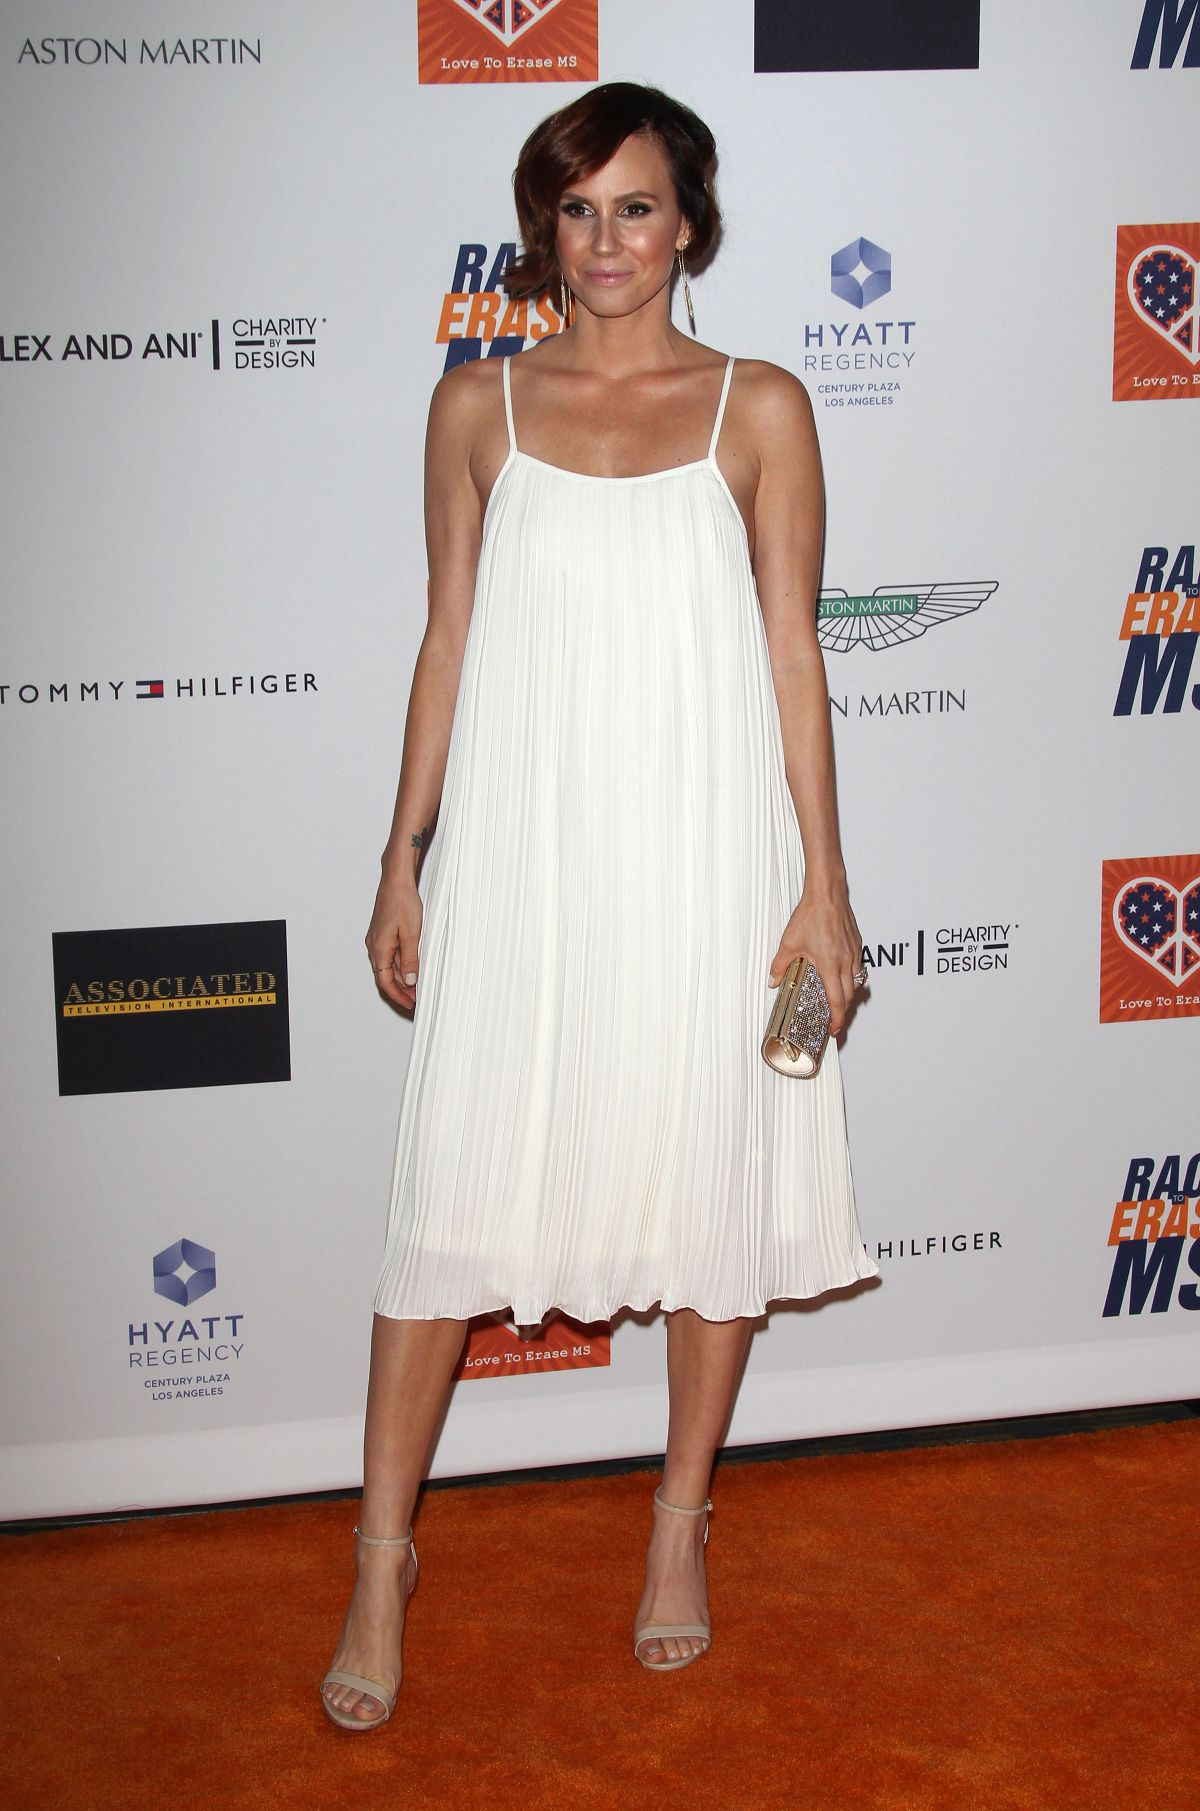 KELTIE KNIGHT at 2015 Race to Erase MS Event in Century City